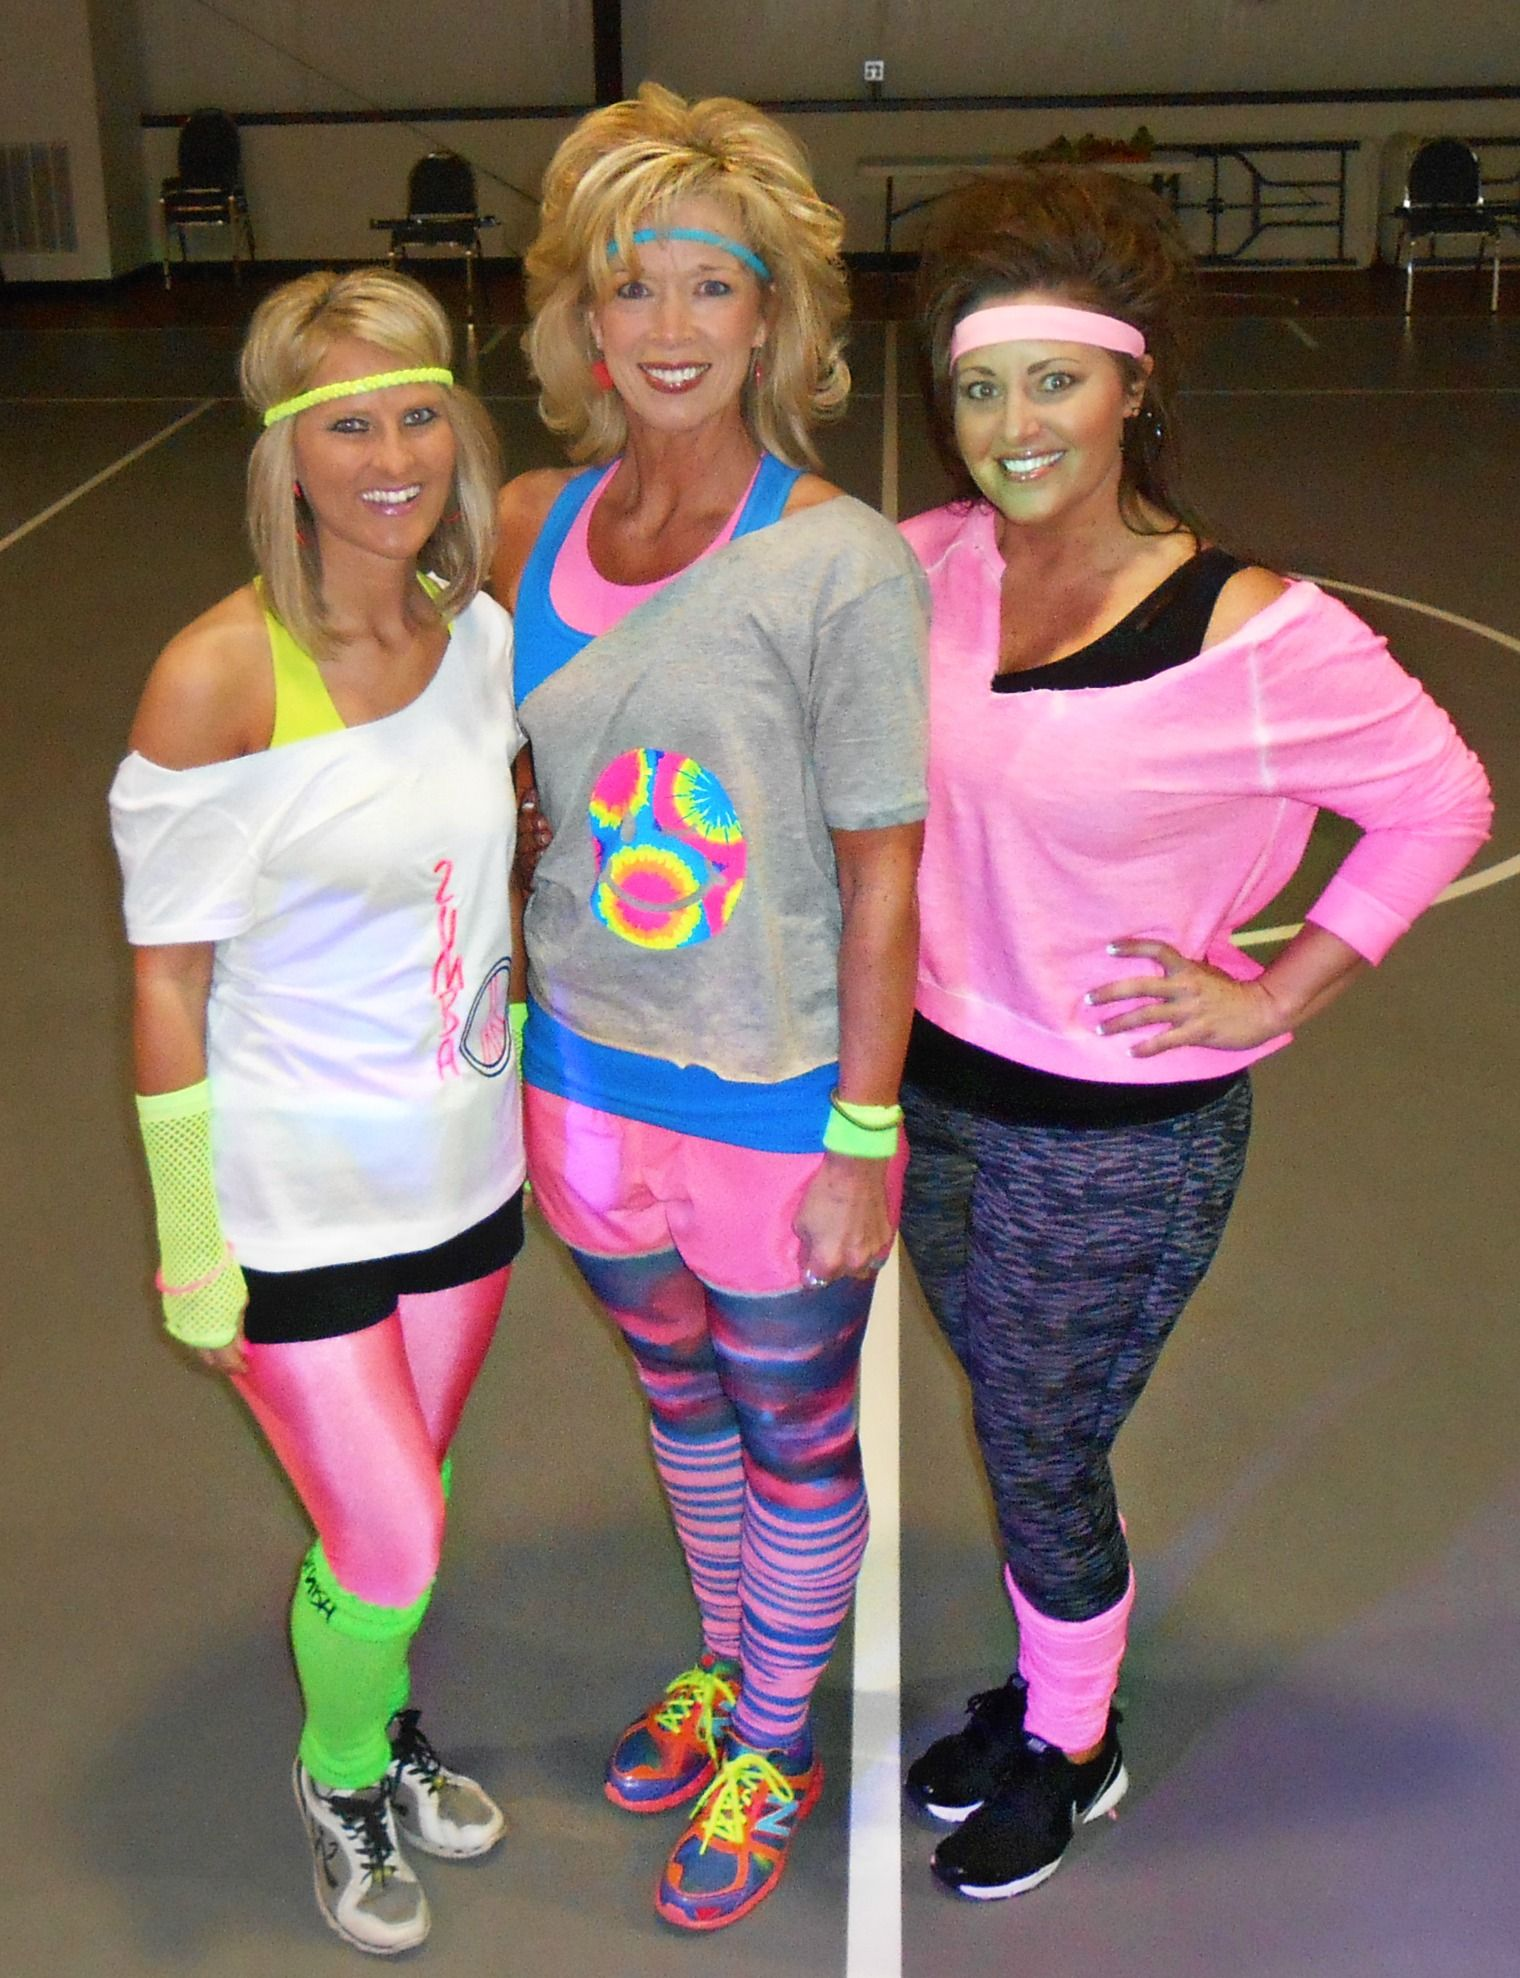 Halloween Feesten 2019.80 S Attire For Cosmic Zumba Weworkout Health And